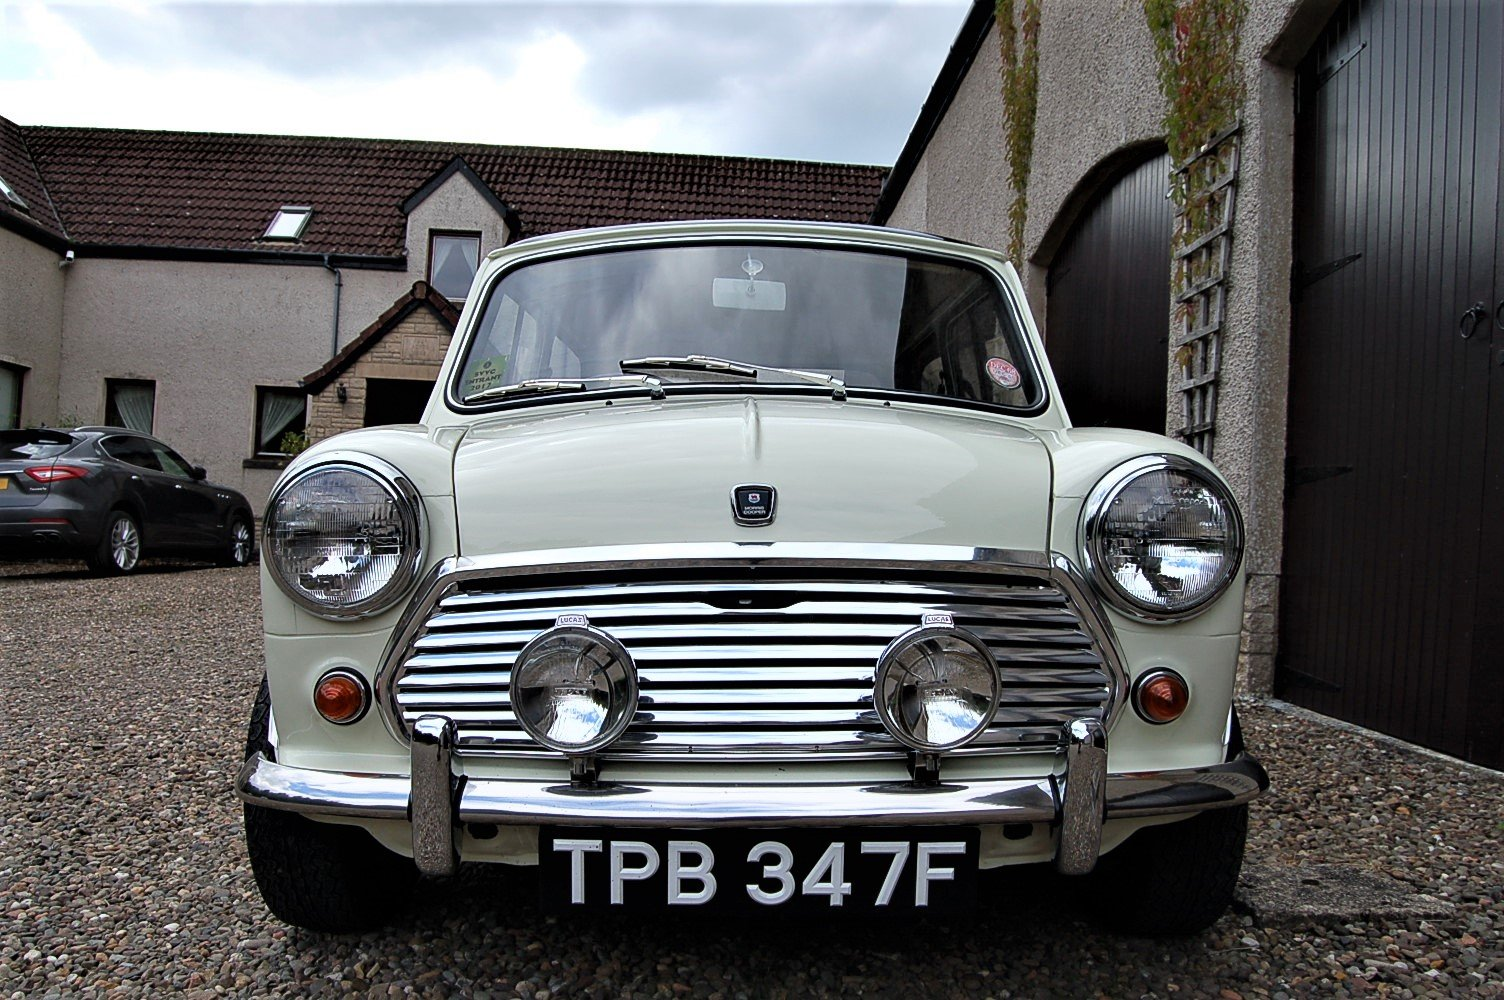 1968 Austin/Morris cooper MK11 s SOLD (picture 6 of 6)